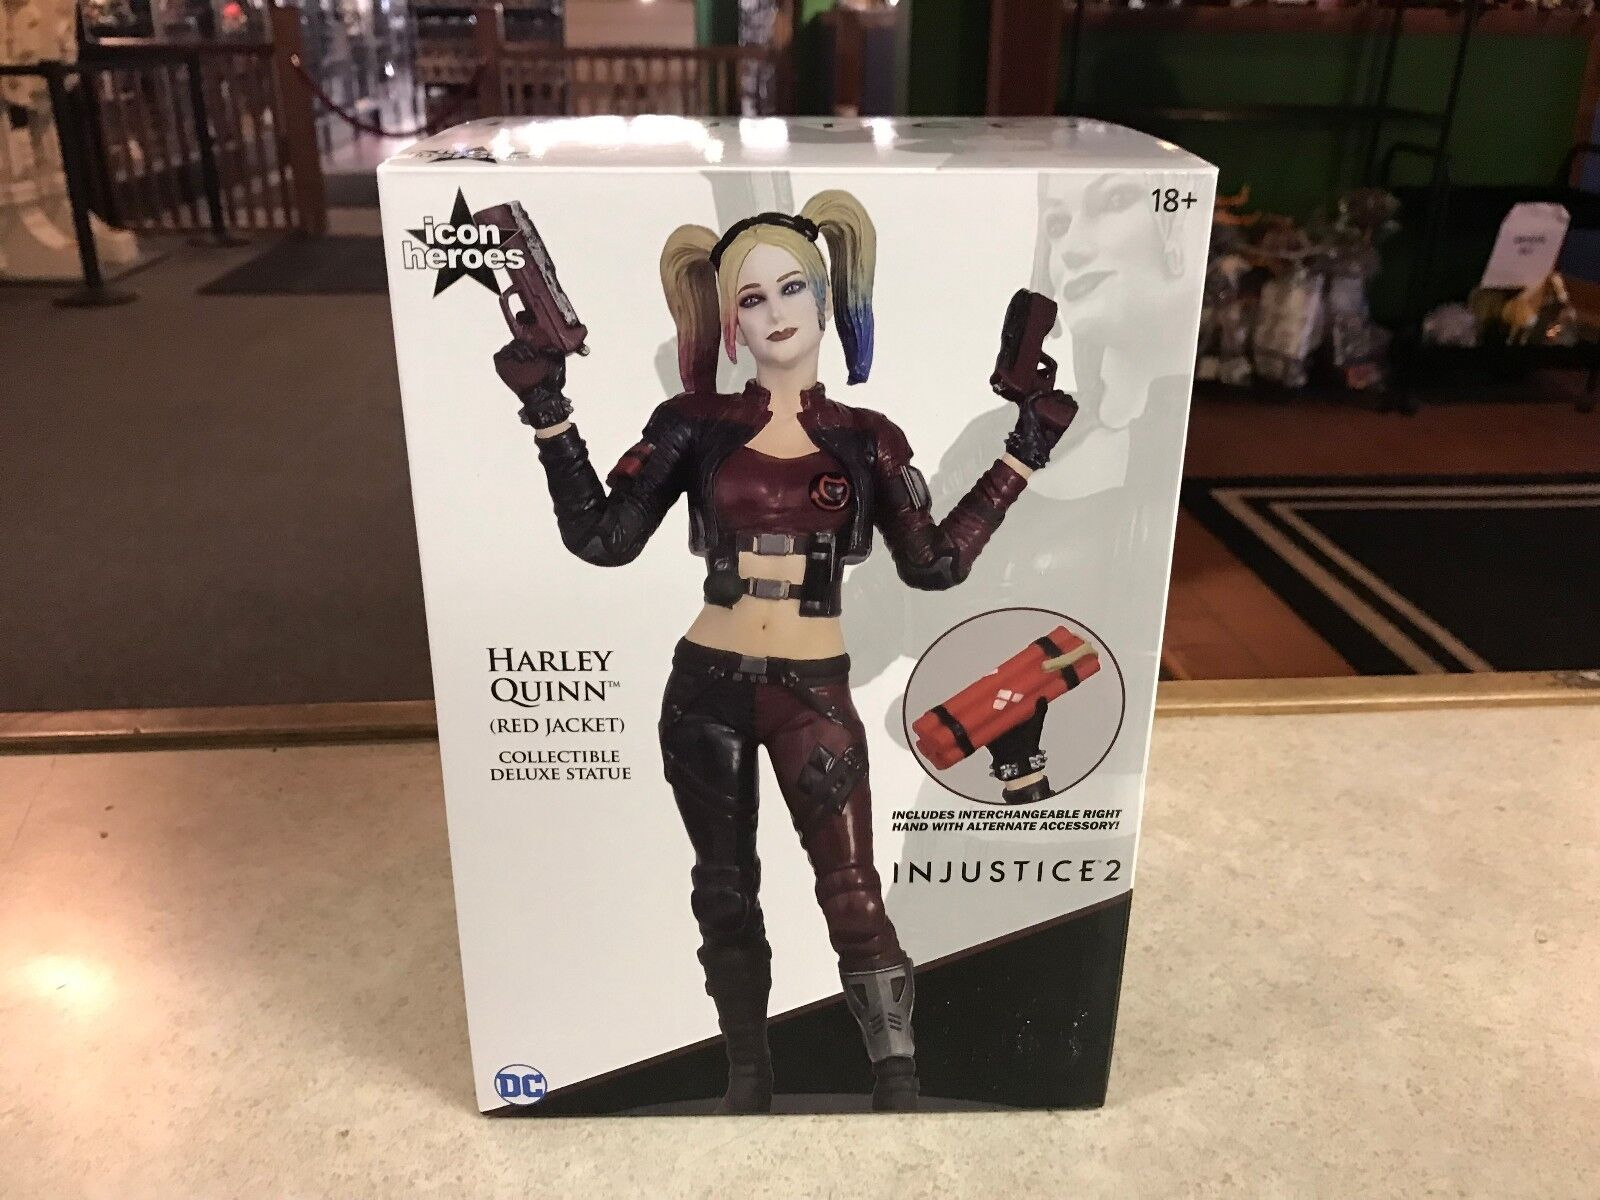 DC Injustice 2 Harley Quinn PX Previews Exclusive rot Jacket Statue Icon Heroes